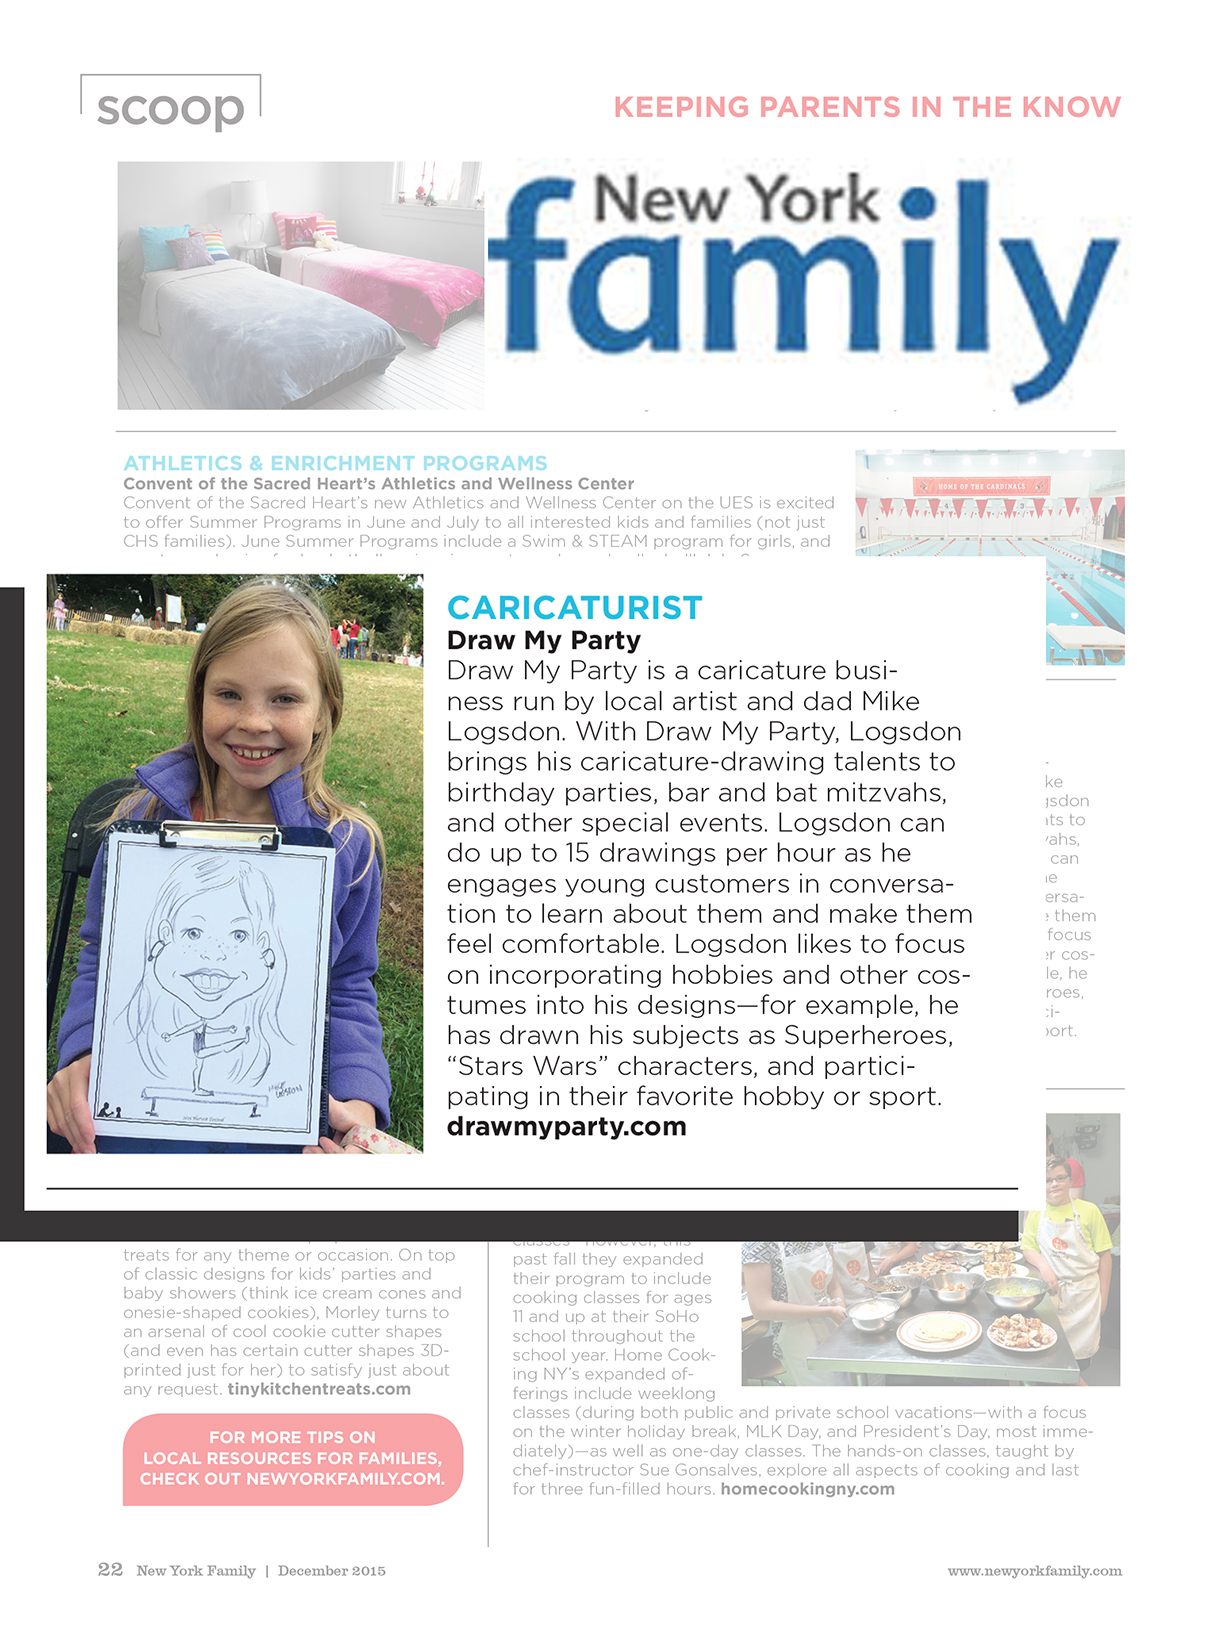 NY Family Scoops Caricature article